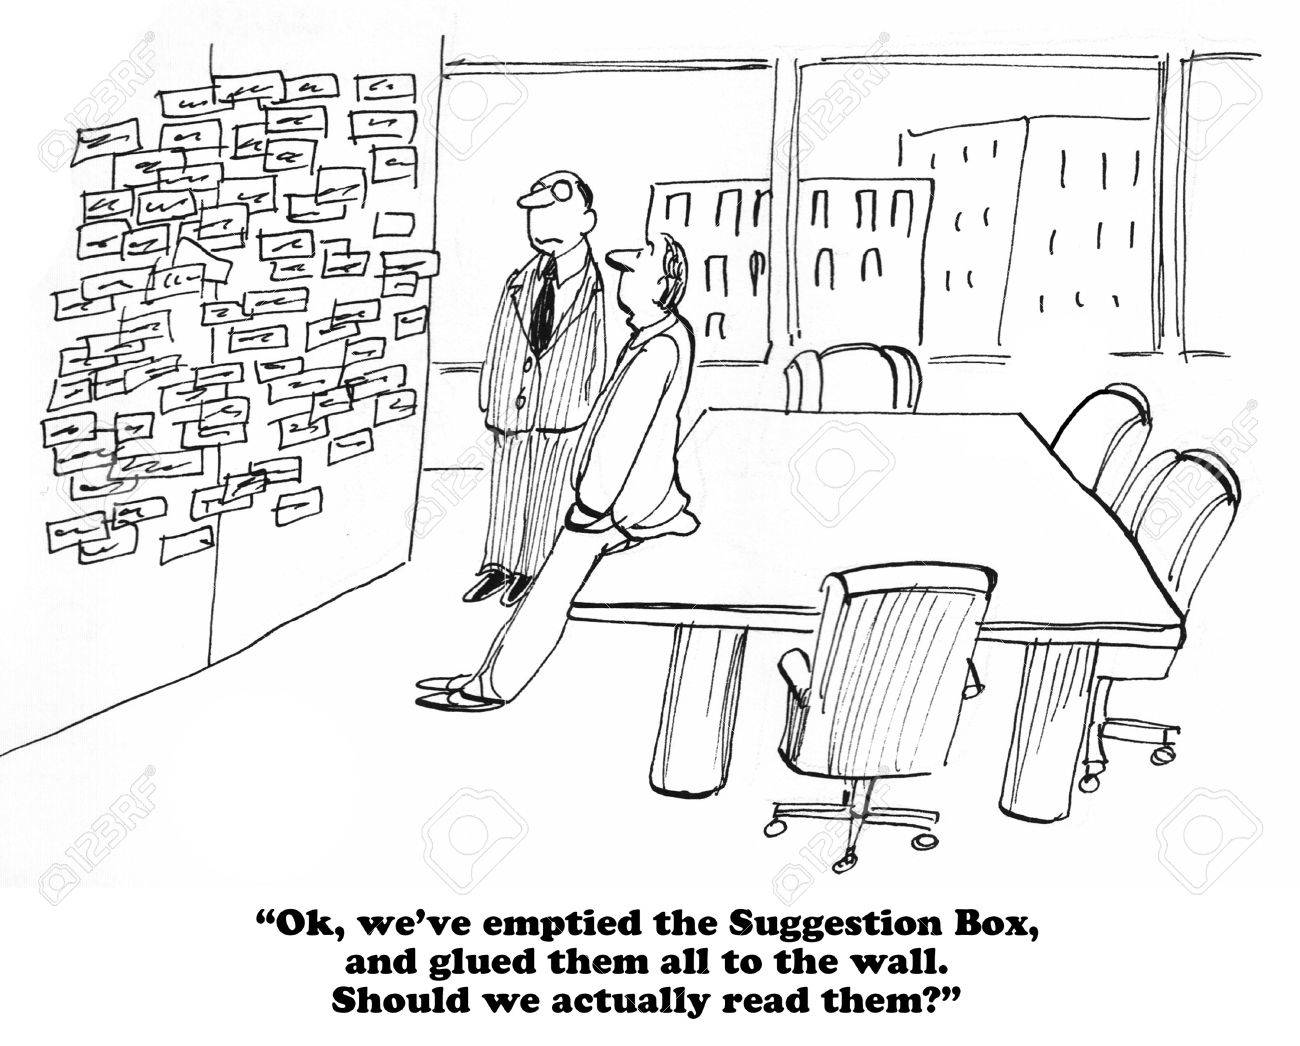 Business cartoon about internalizing the suggestions in the Suggestion Box. - 57742222